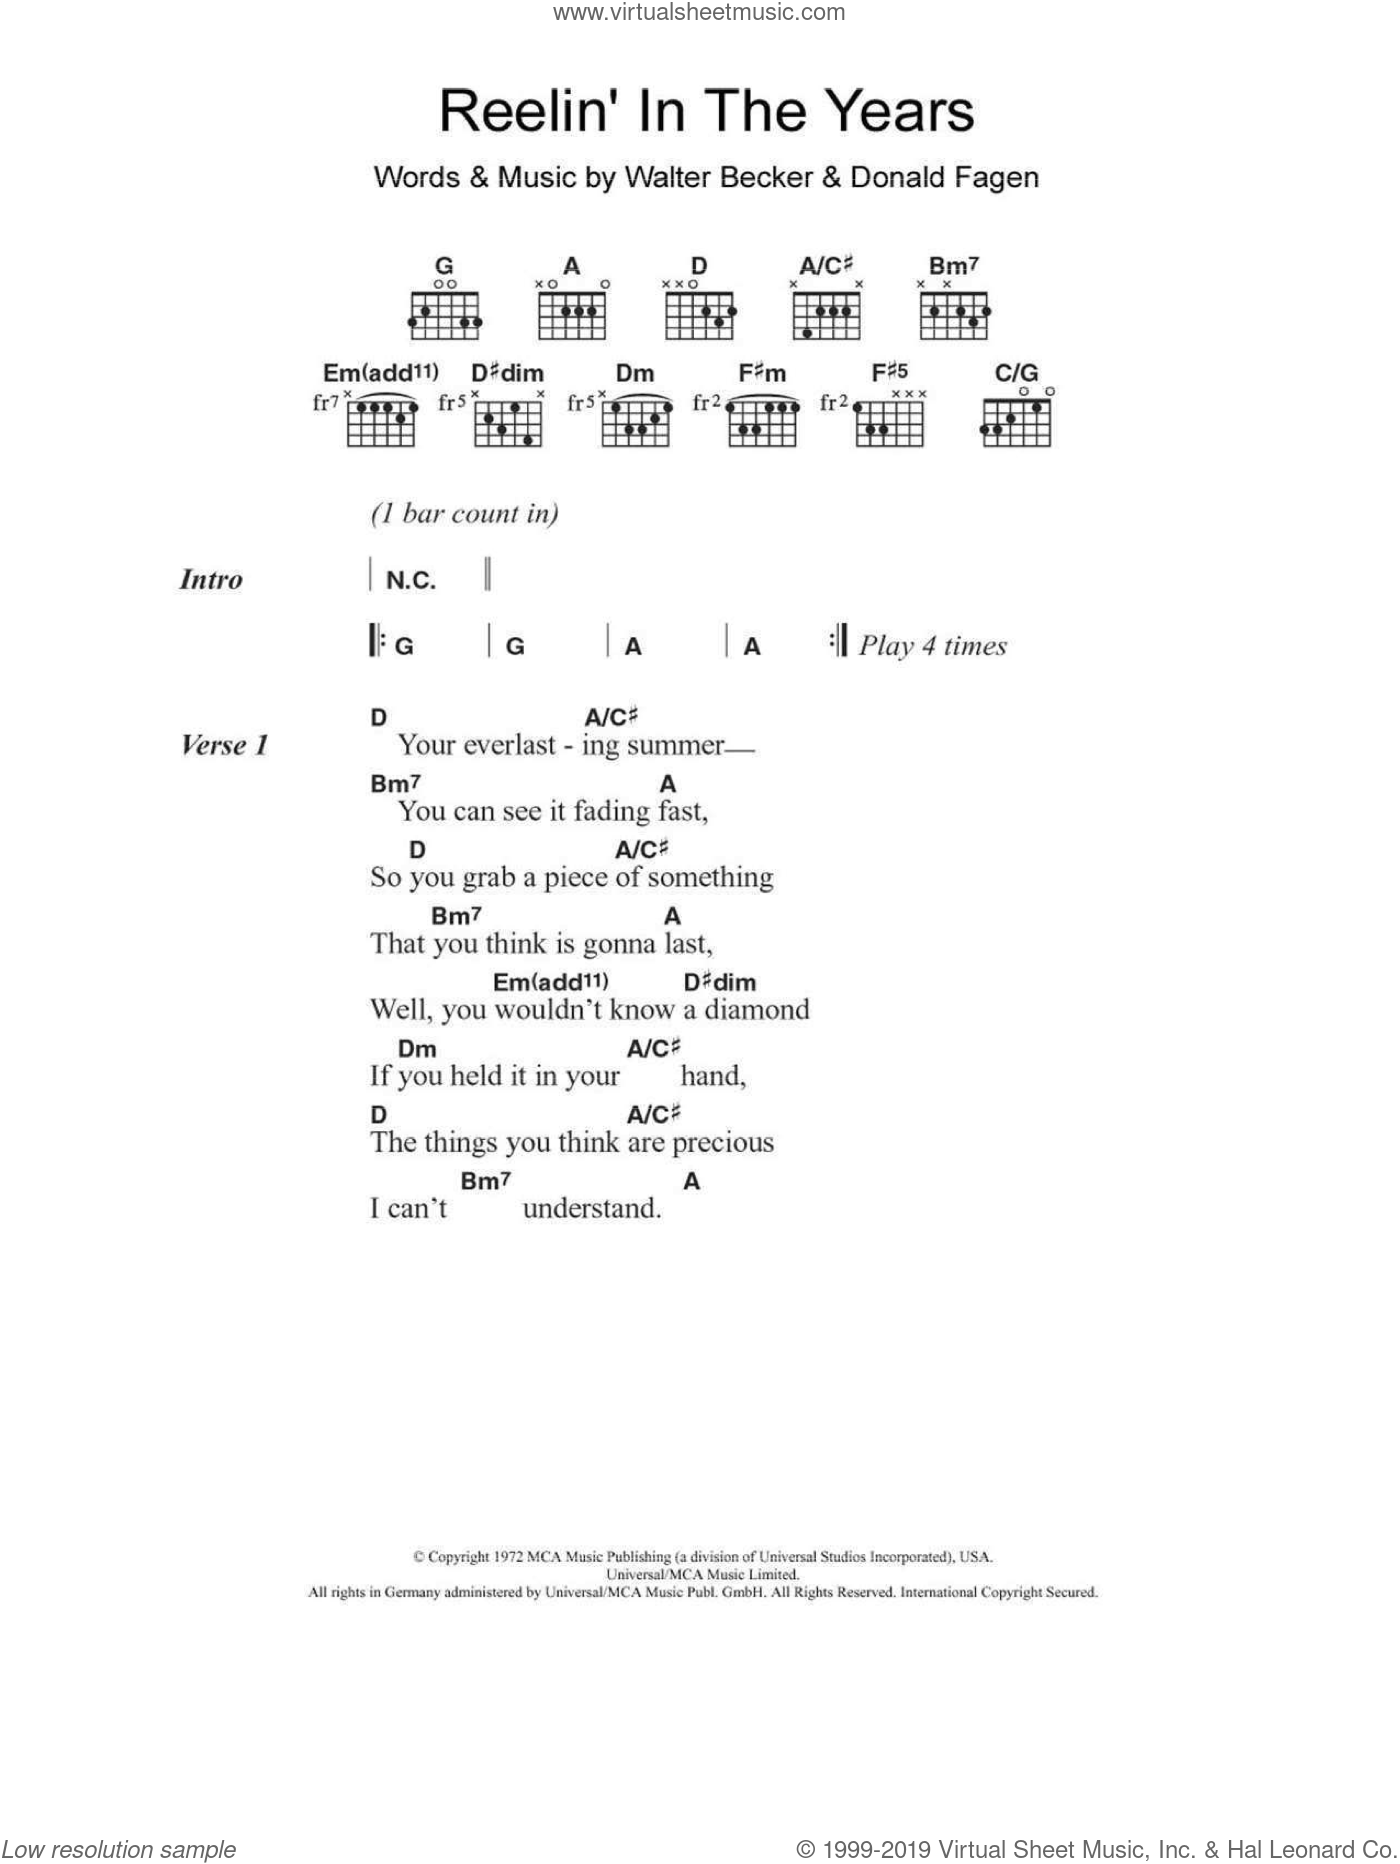 Reelin' In The Years sheet music for guitar (chords) by Walter Becker